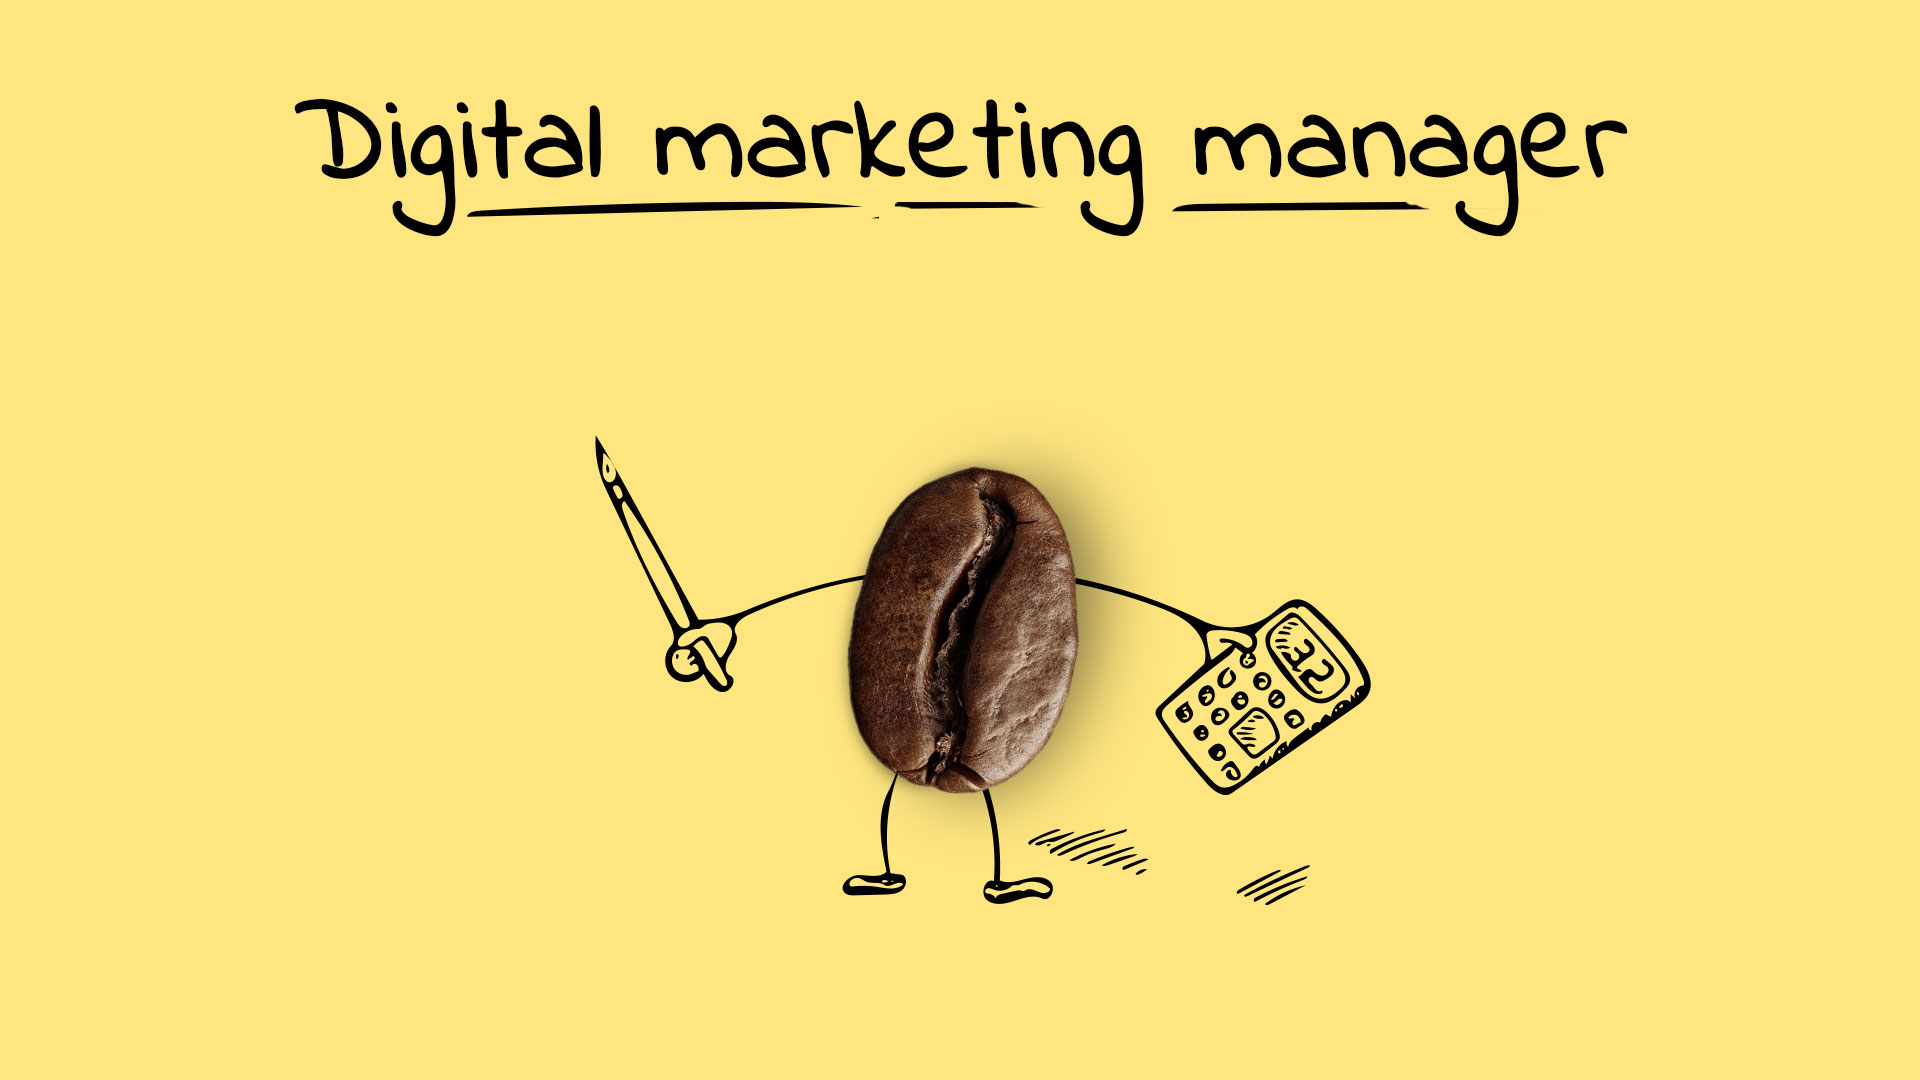 digital marketer, content manager